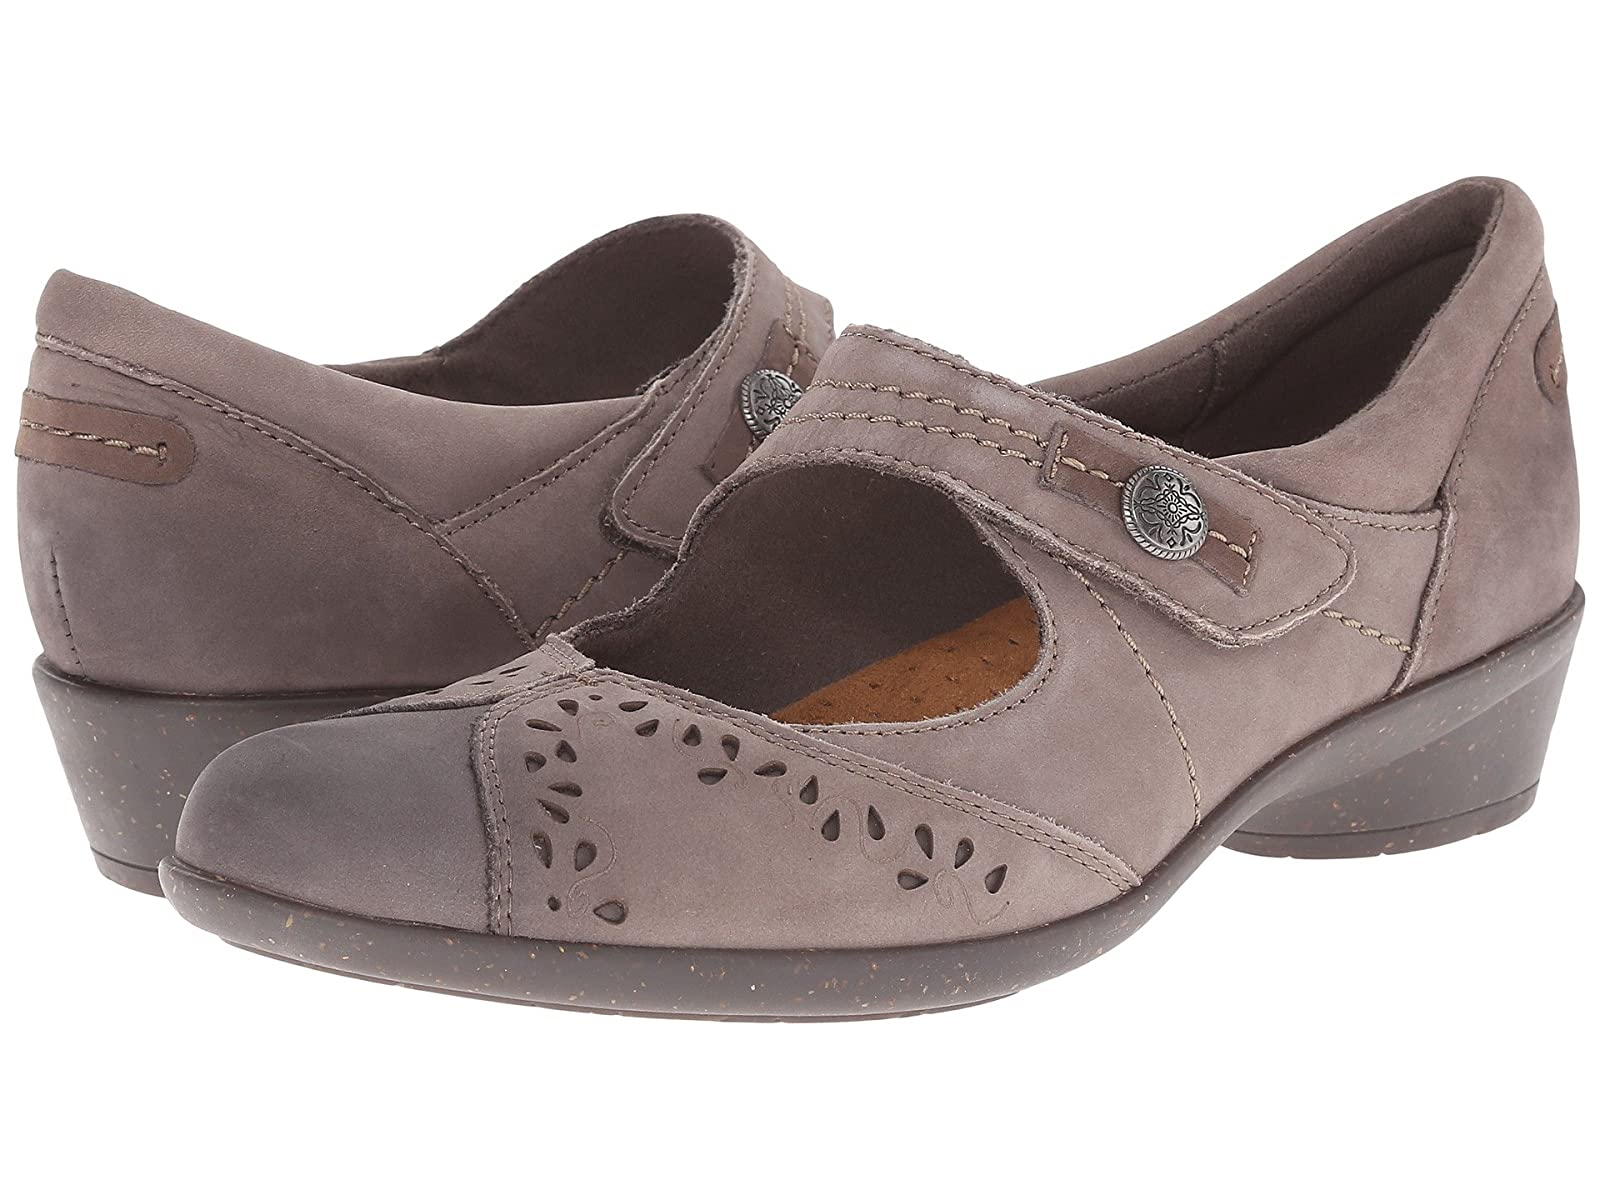 Rockport Cobb Hill Collection NadiaCheap and distinctive eye-catching shoes